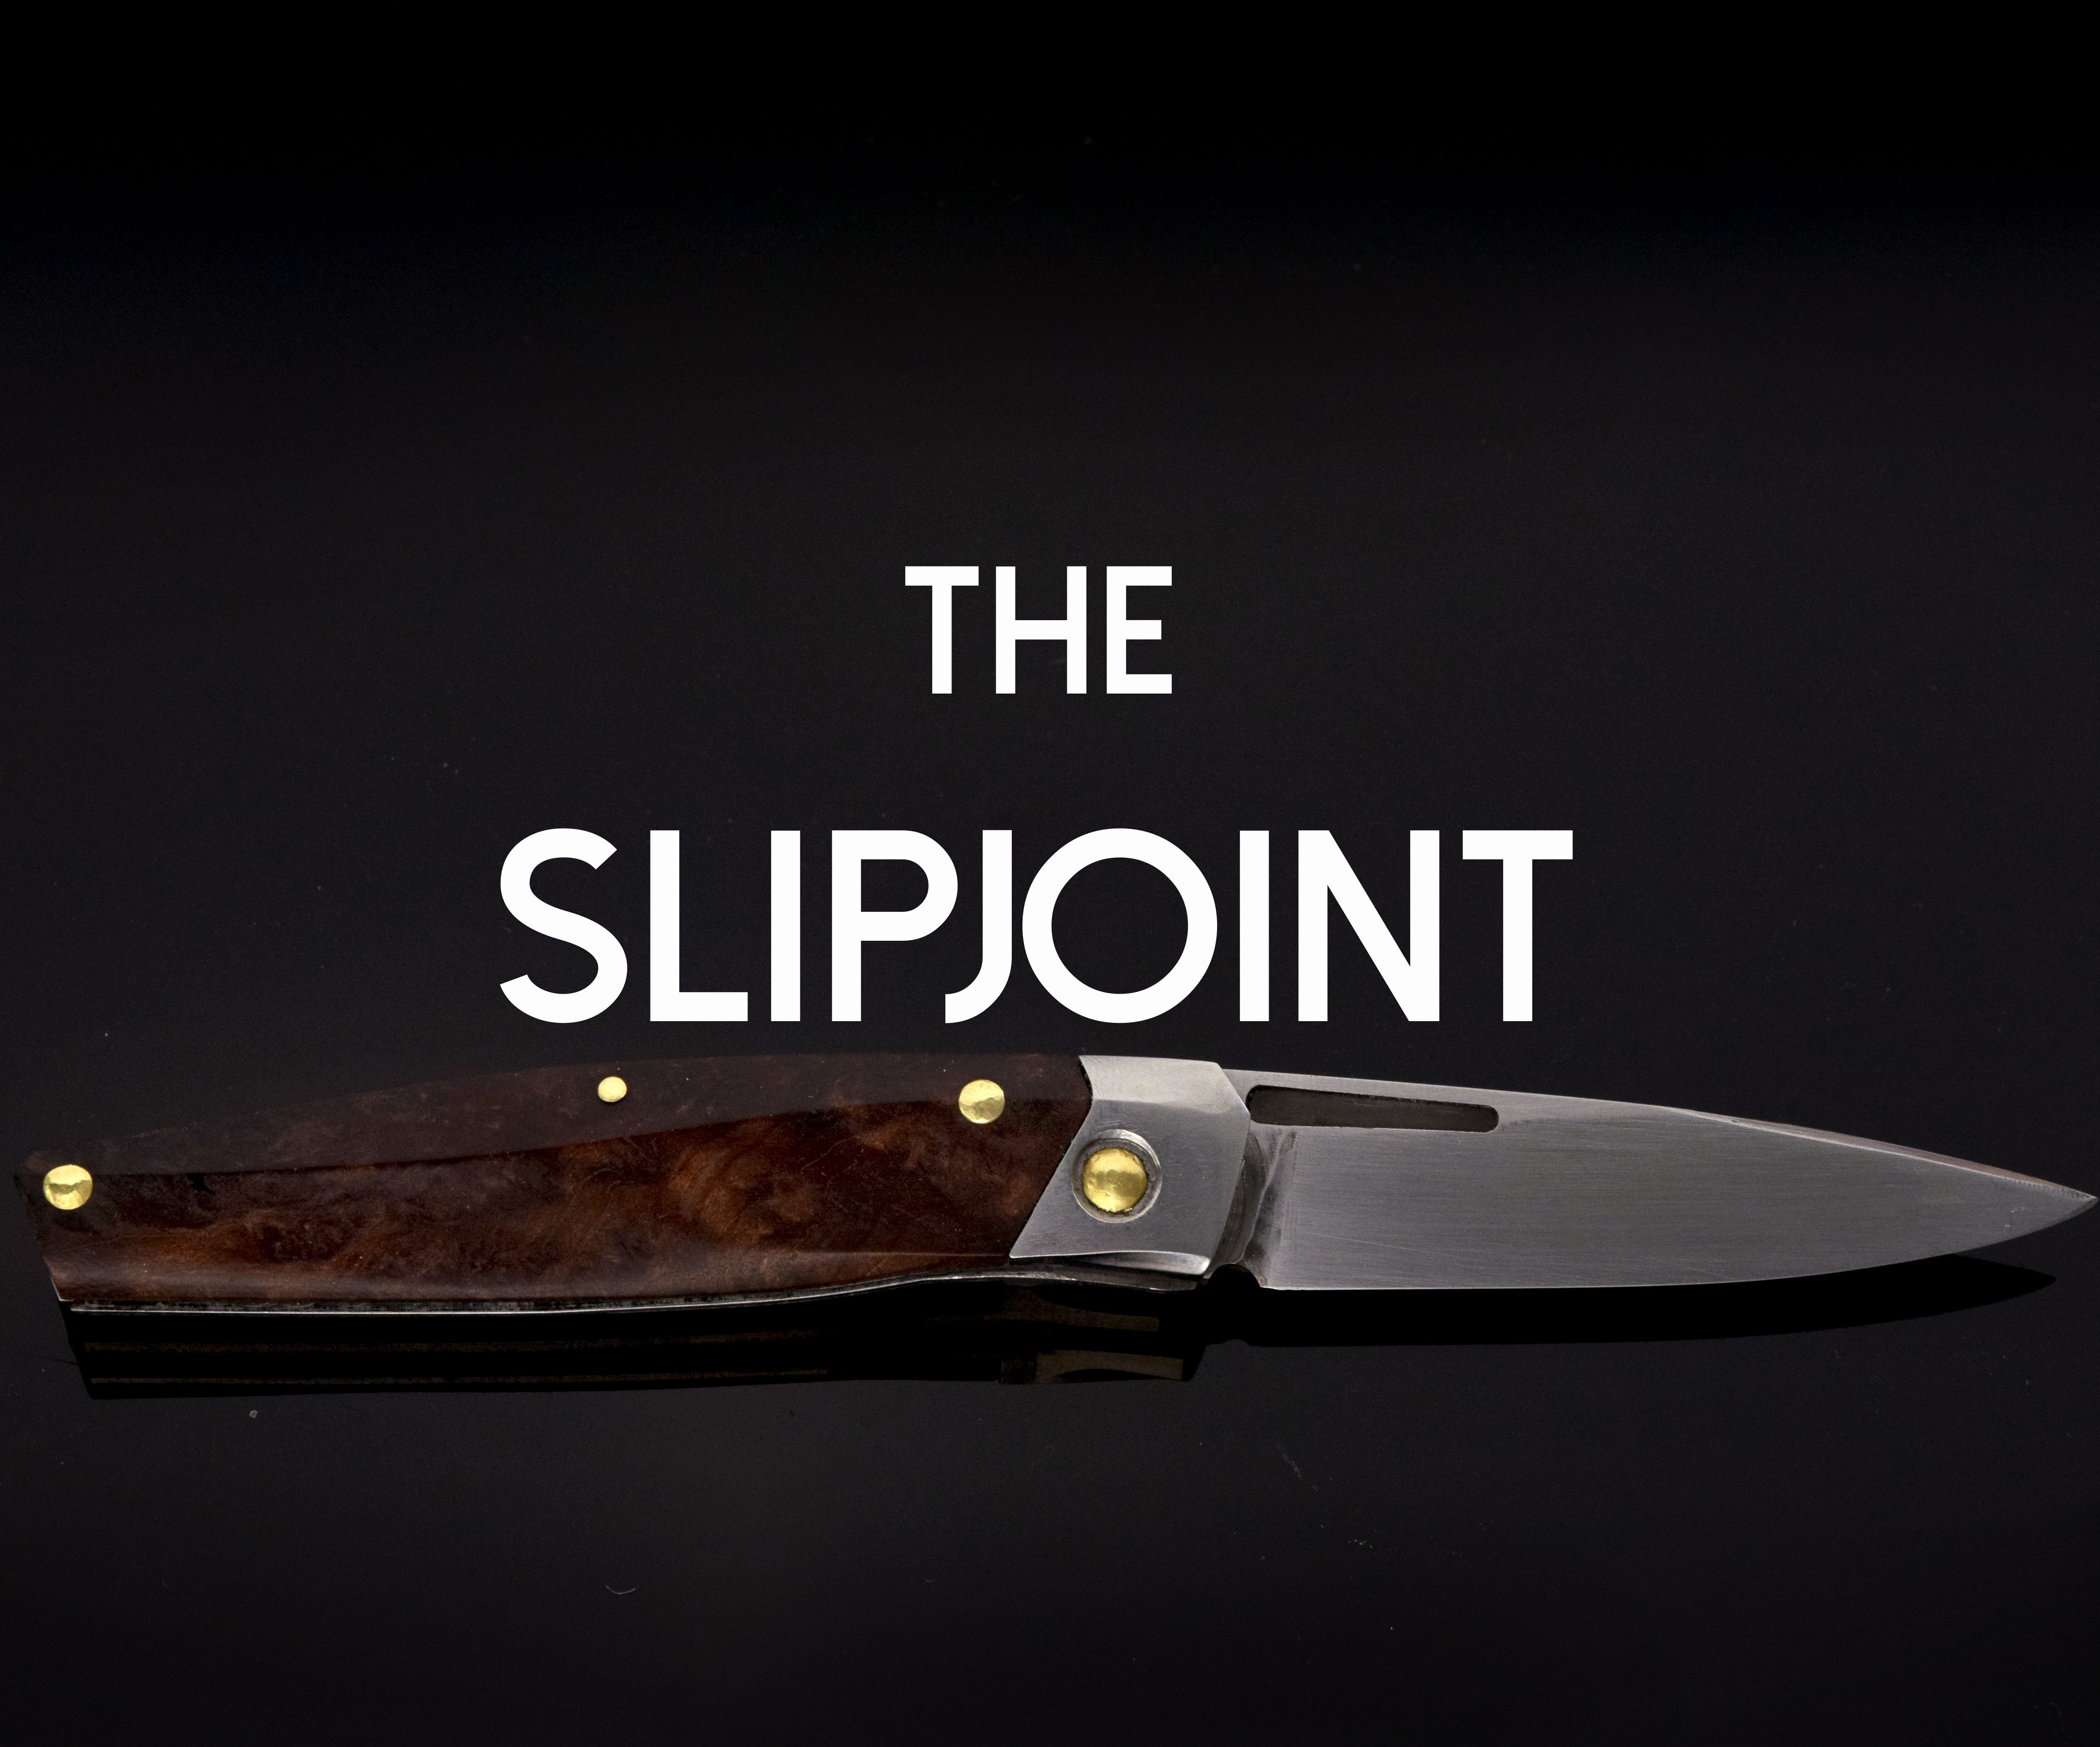 The Slipjoint